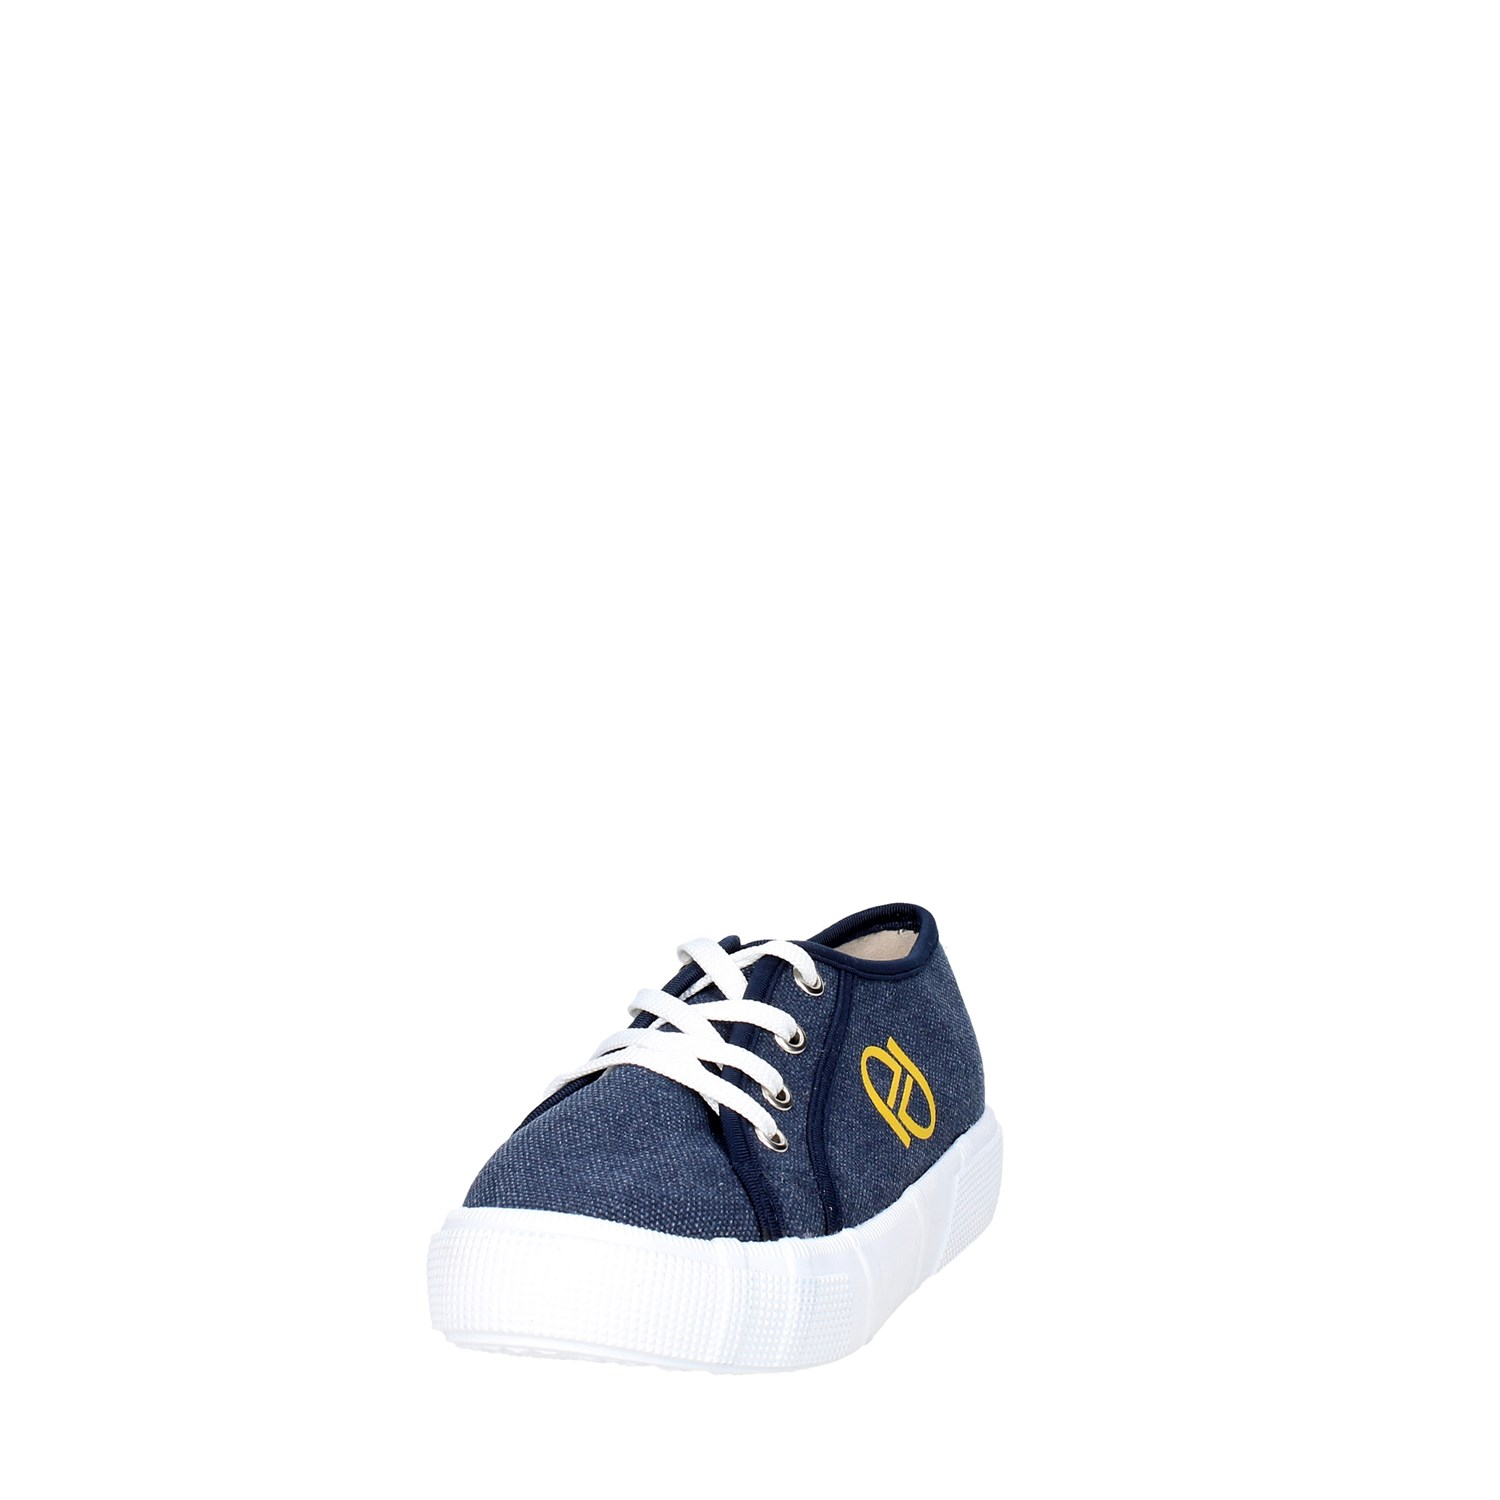 Sneakers Estate per bambini Byblos